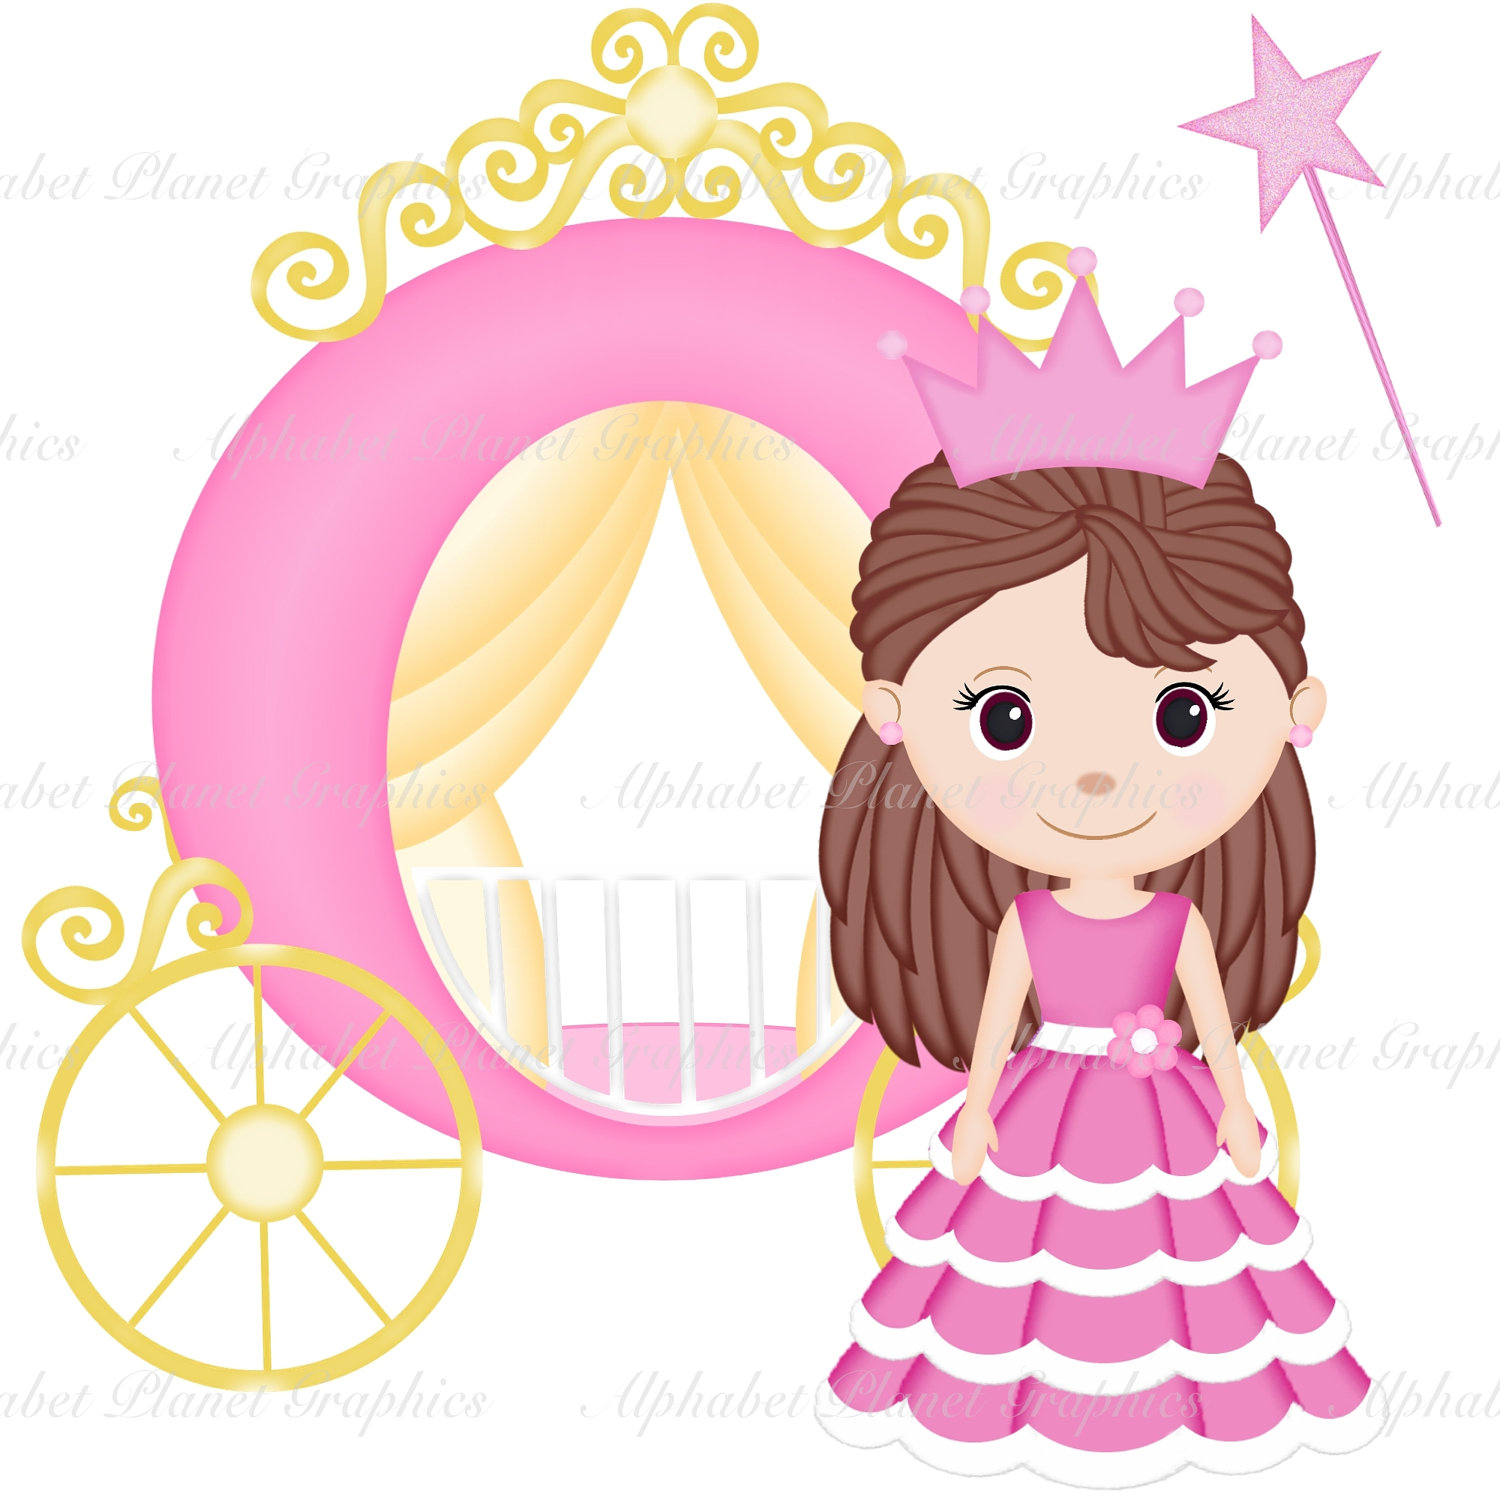 Free princess clipart the cliparts 2.